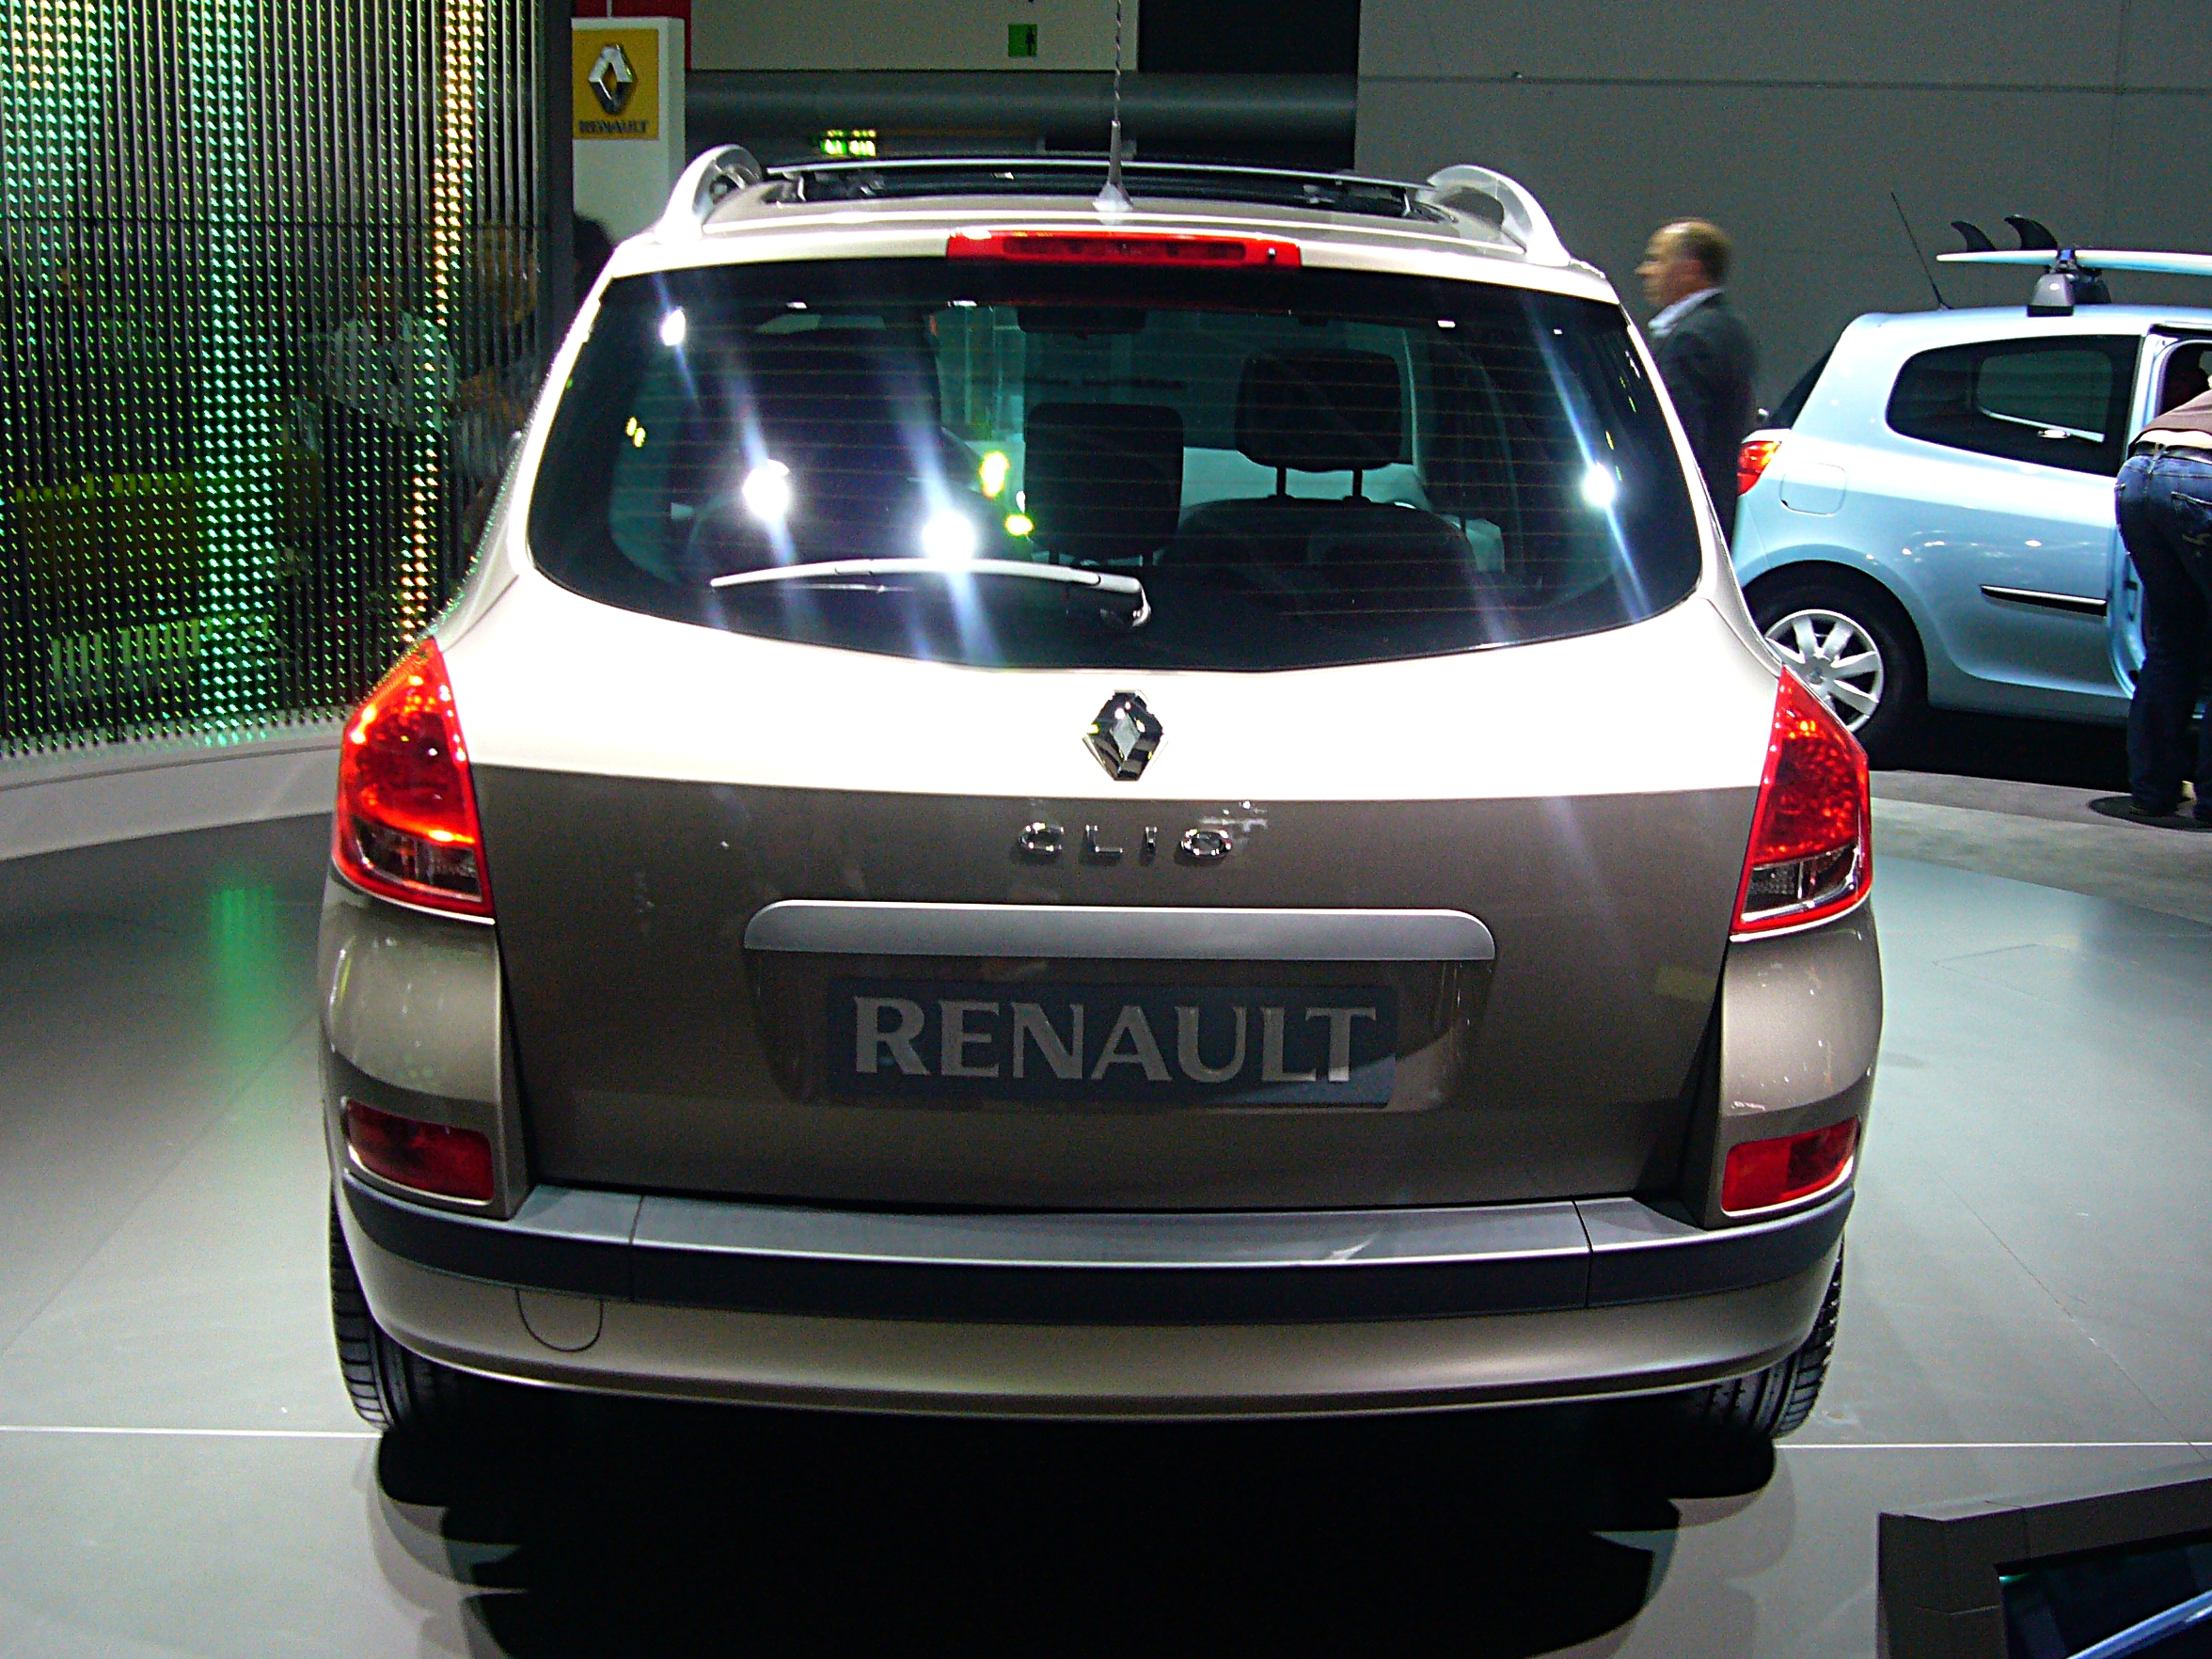 file renault clio estate rear jpg wikimedia commons. Black Bedroom Furniture Sets. Home Design Ideas